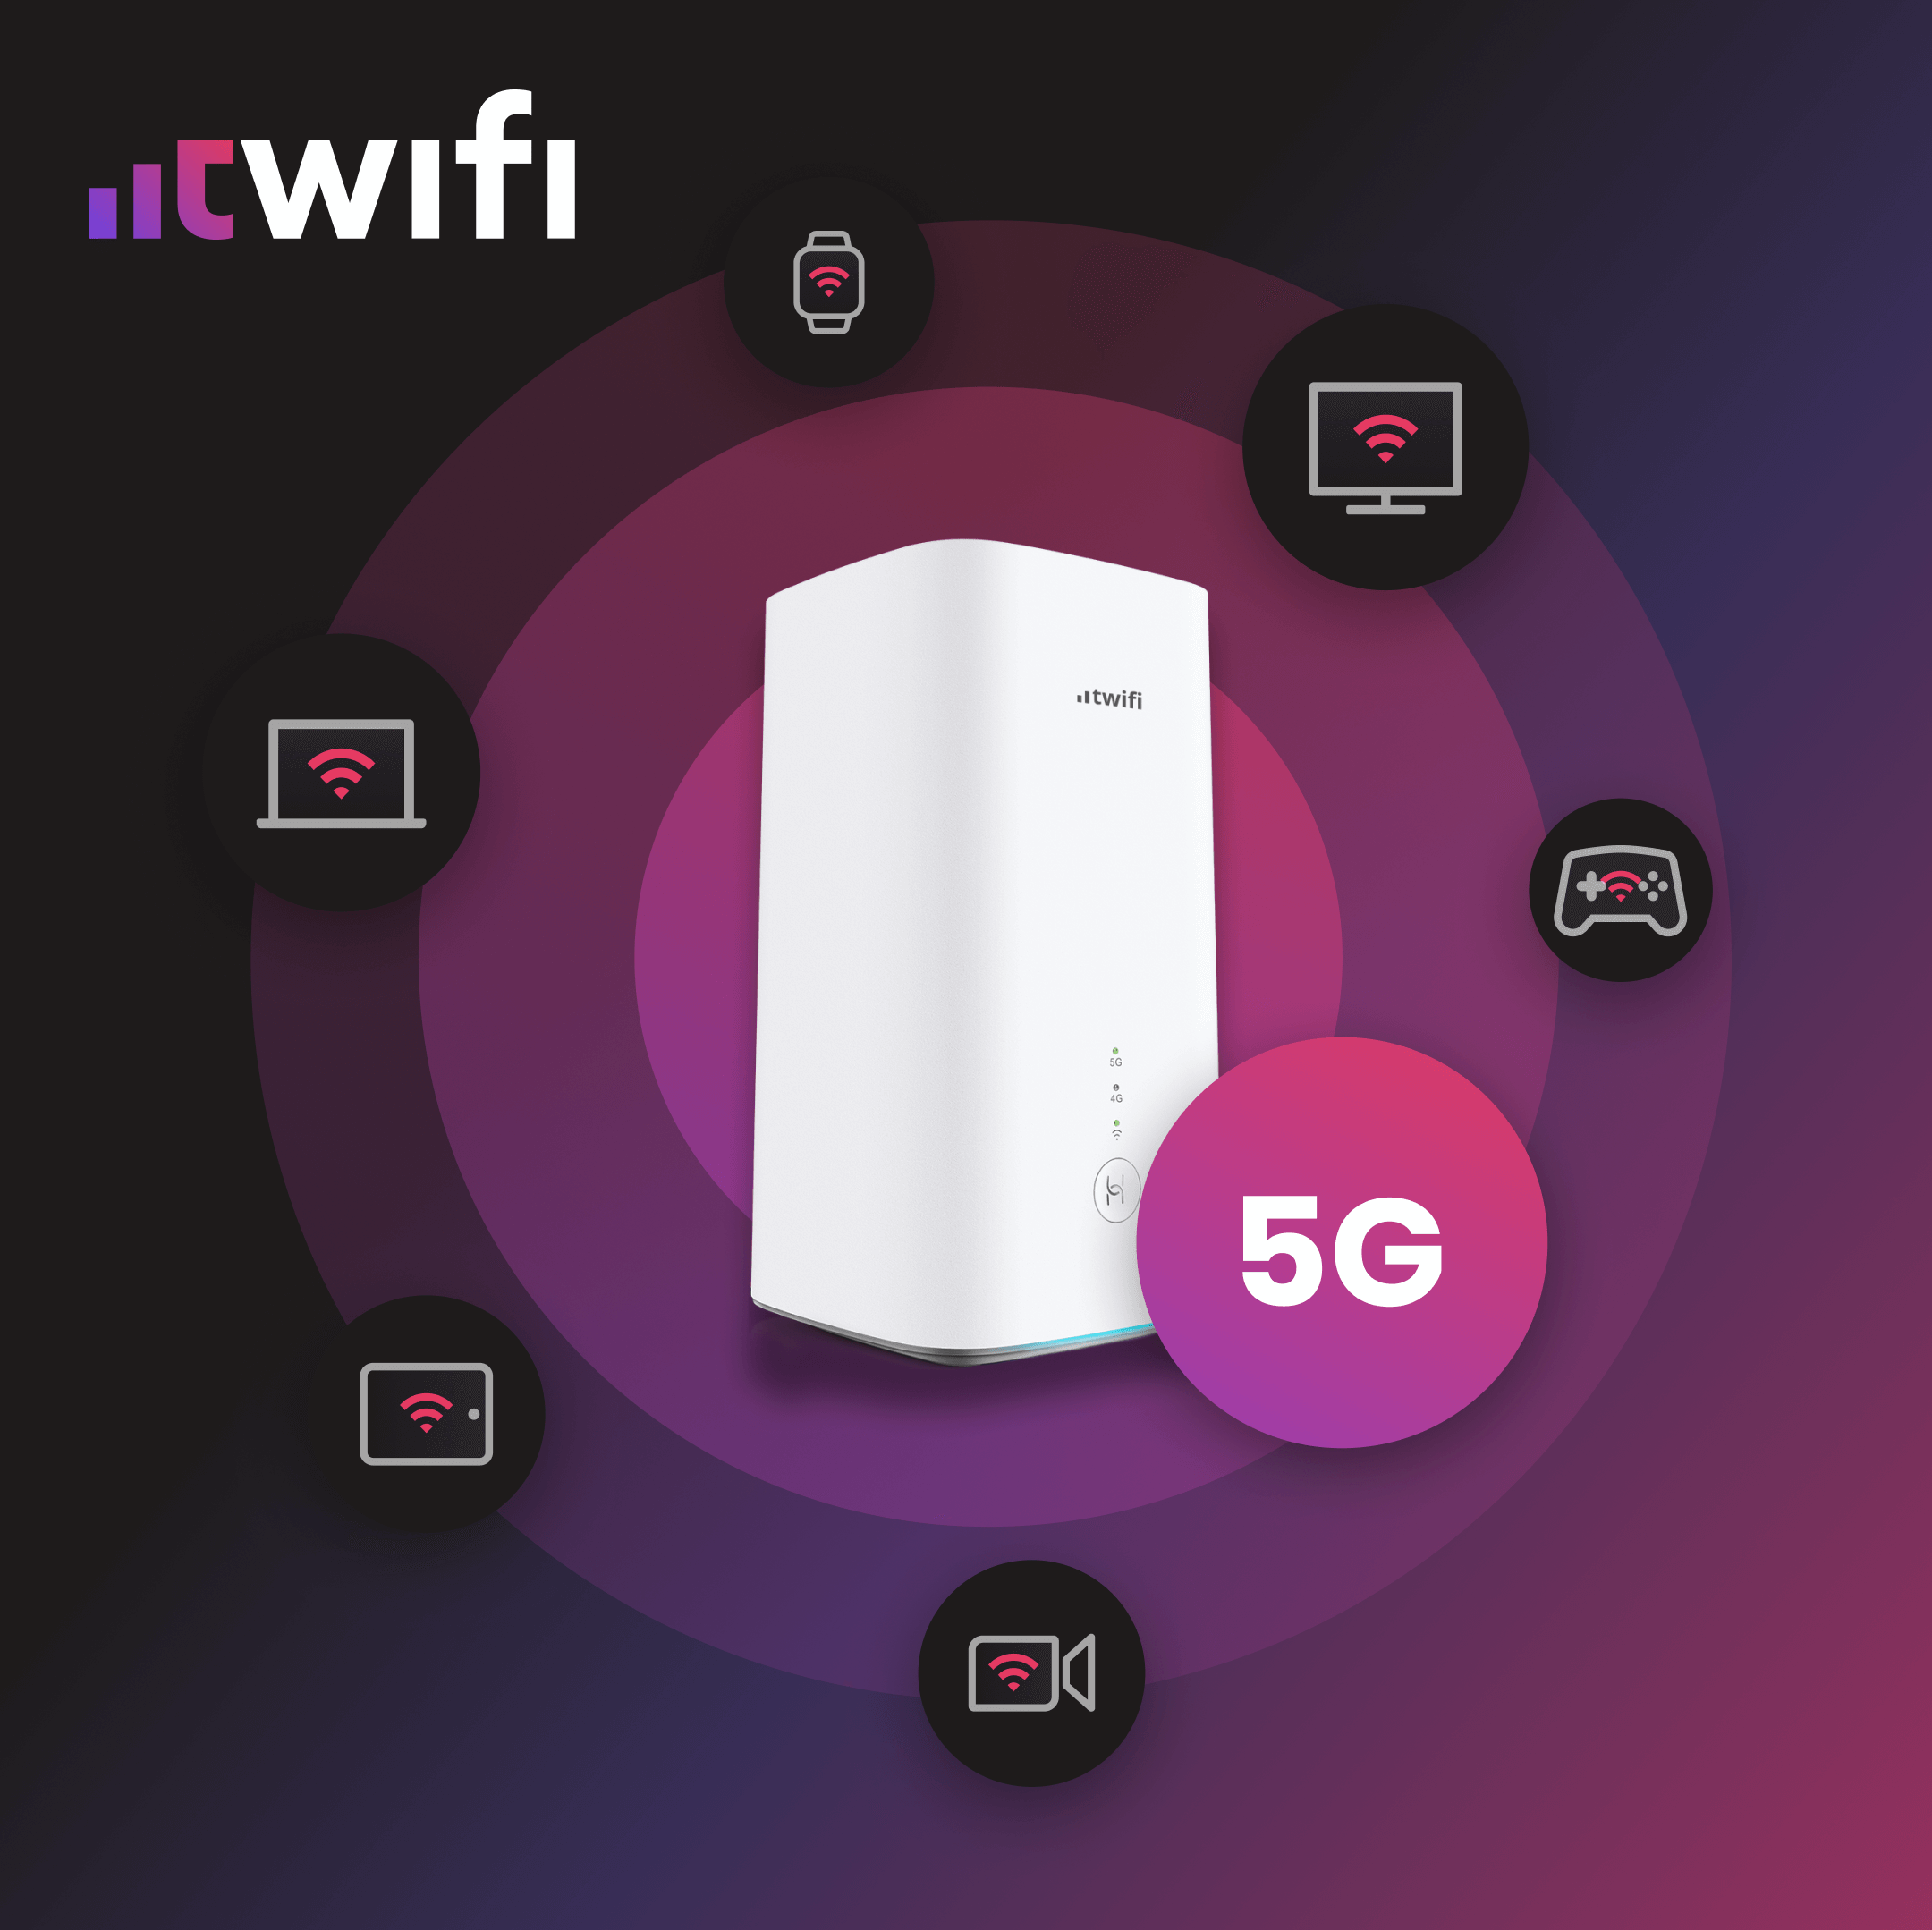 twifi - Home Internet Box - New in 5G!